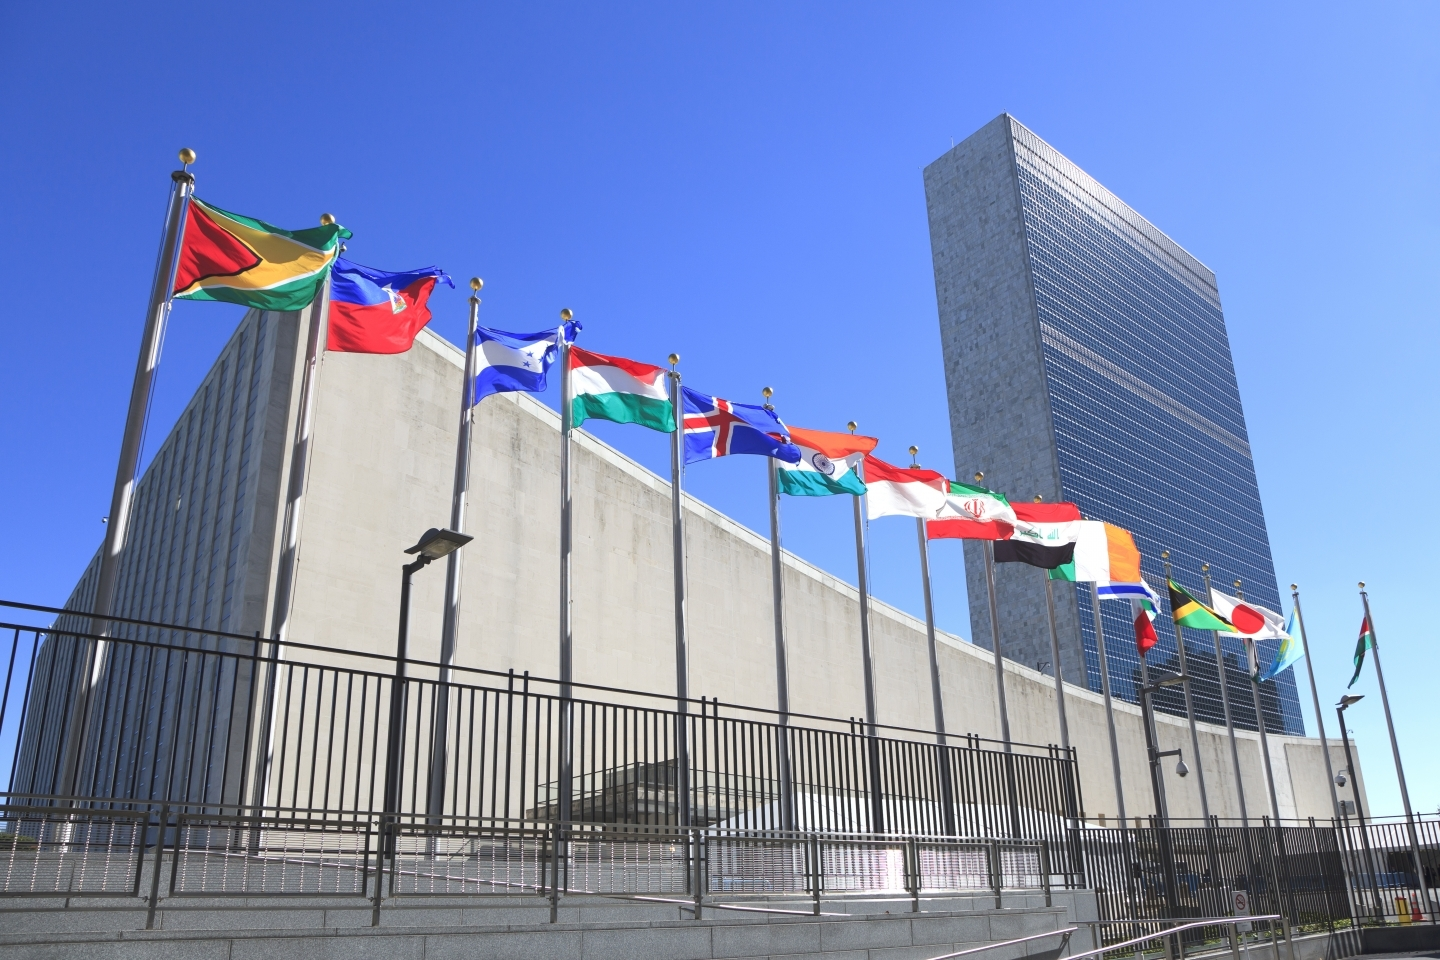 The United Nations headquarters in New York. (Shutterstock)